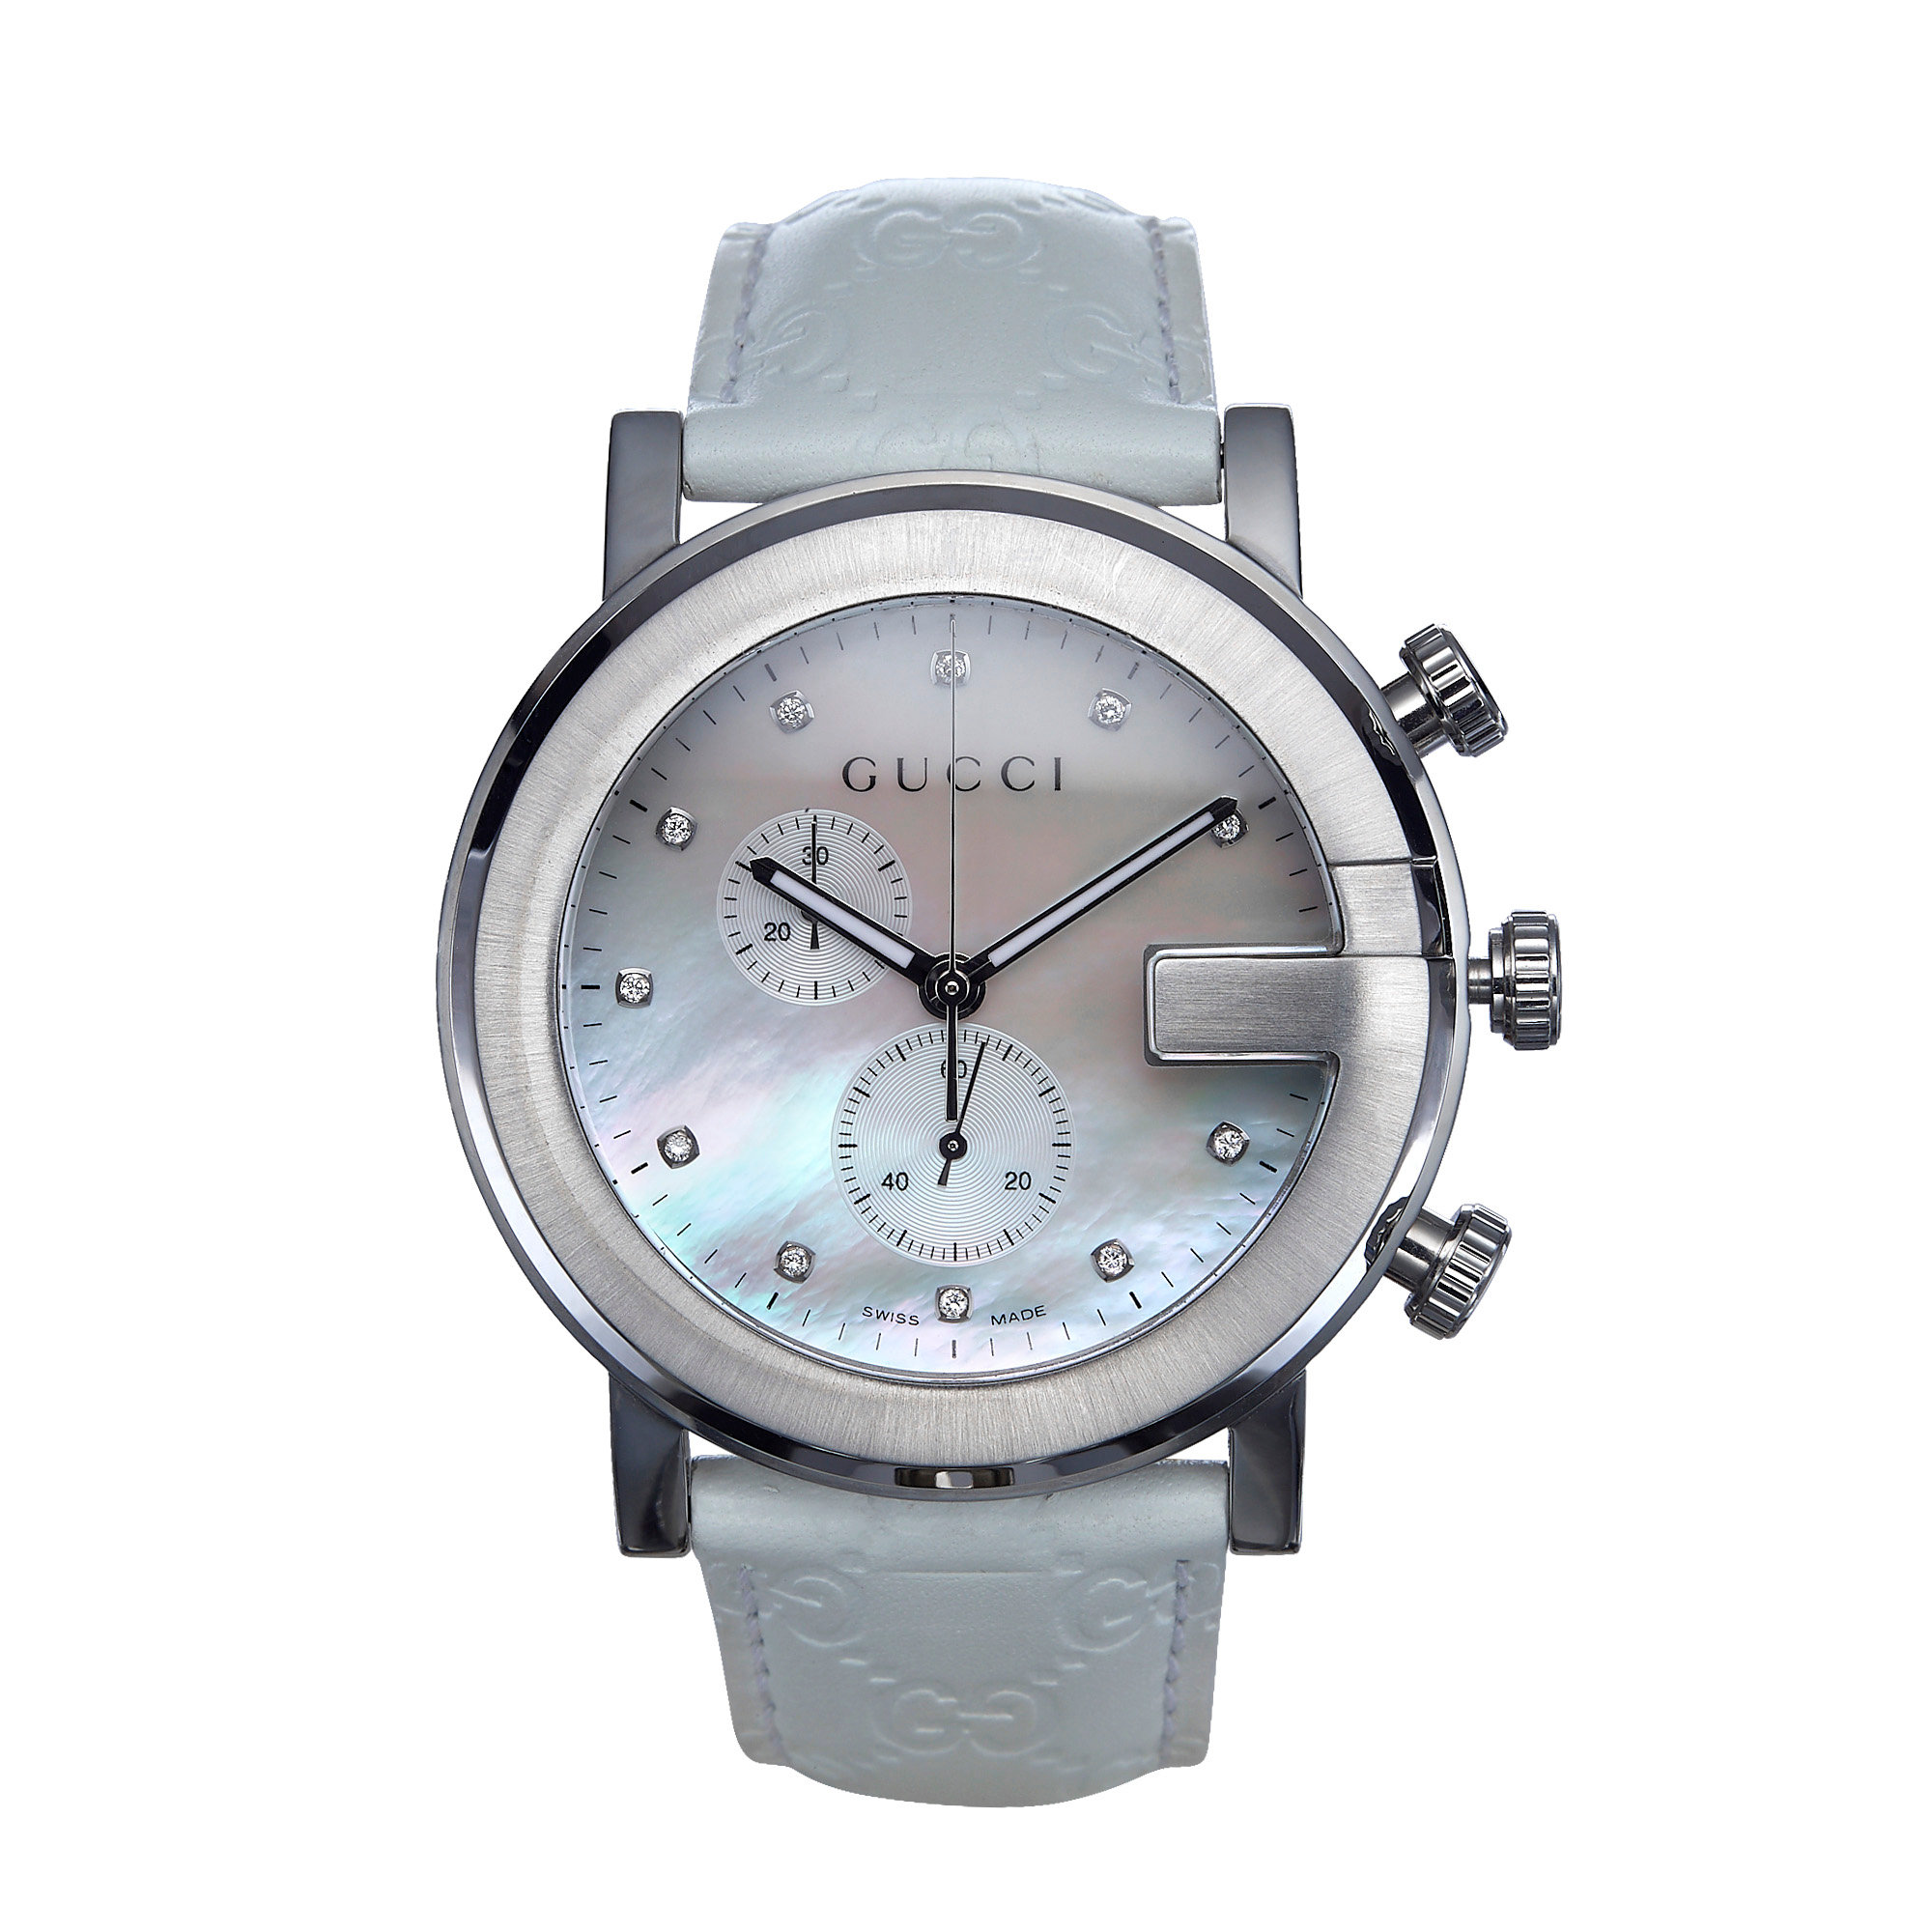 57b0c136550 GUCCI G Chrono Mother of Pearl Watch